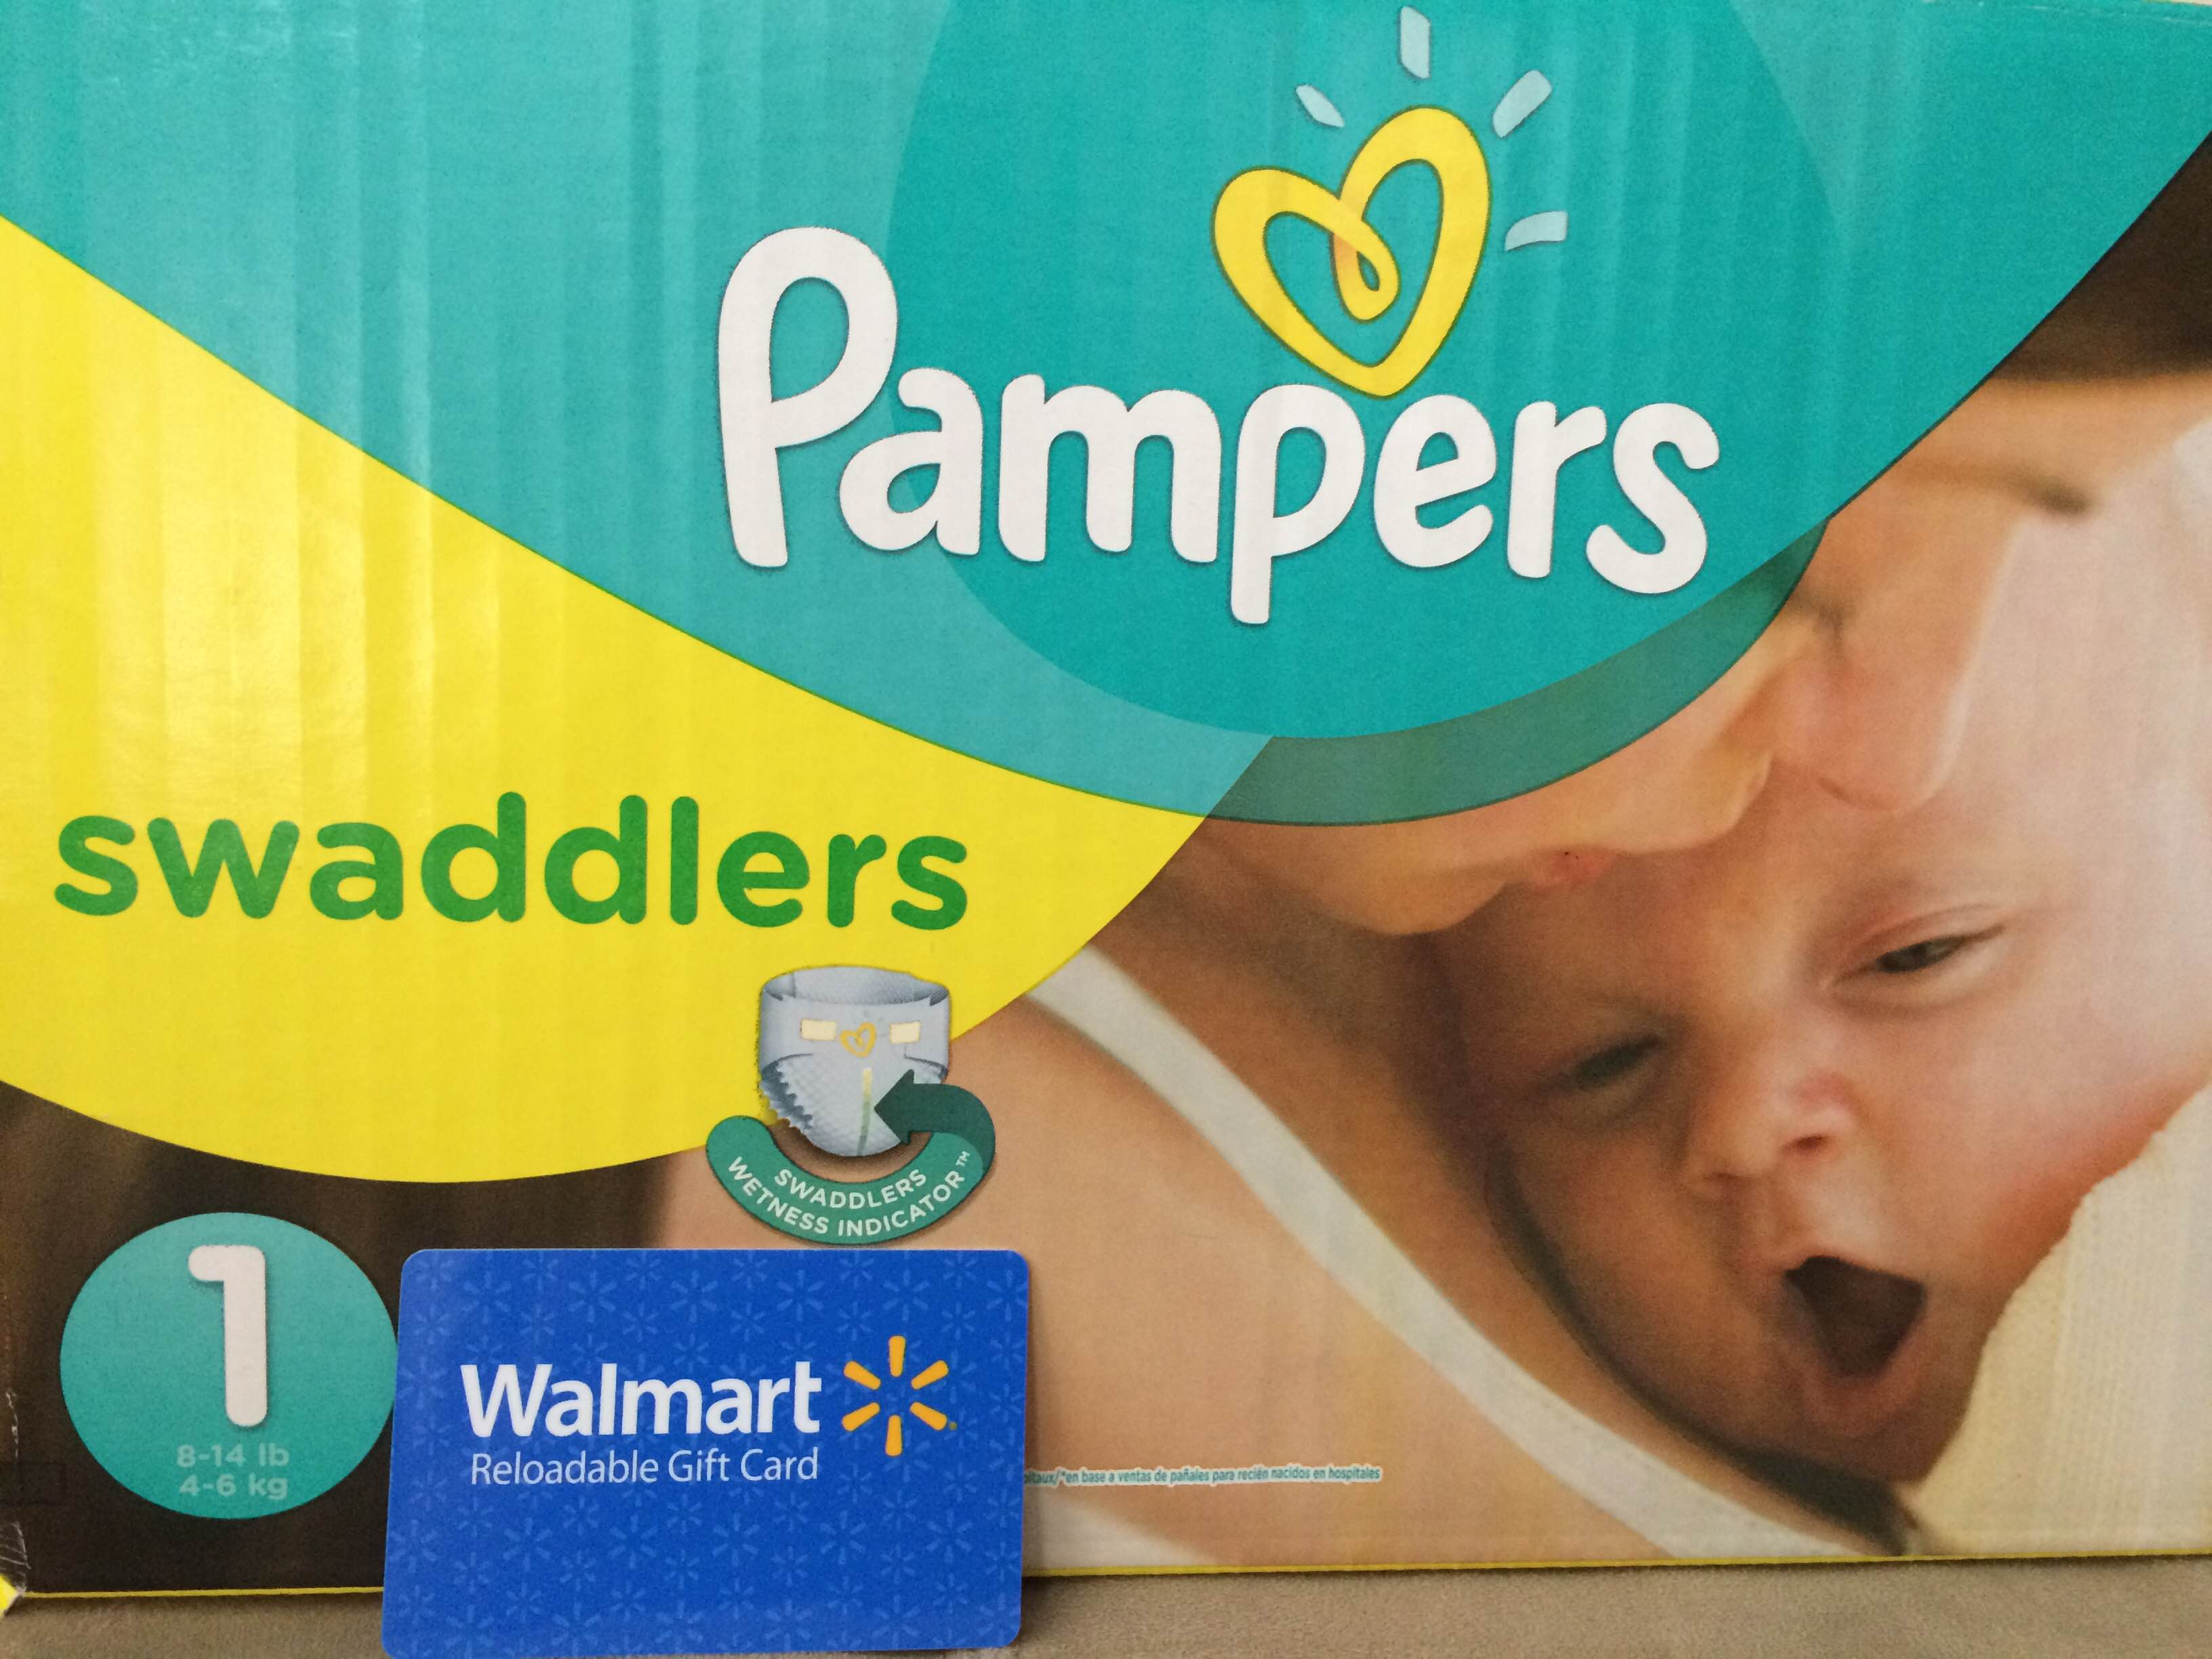 Help support the Children's Miracle Network Hospitals with this Pampers giveaway from Walmart